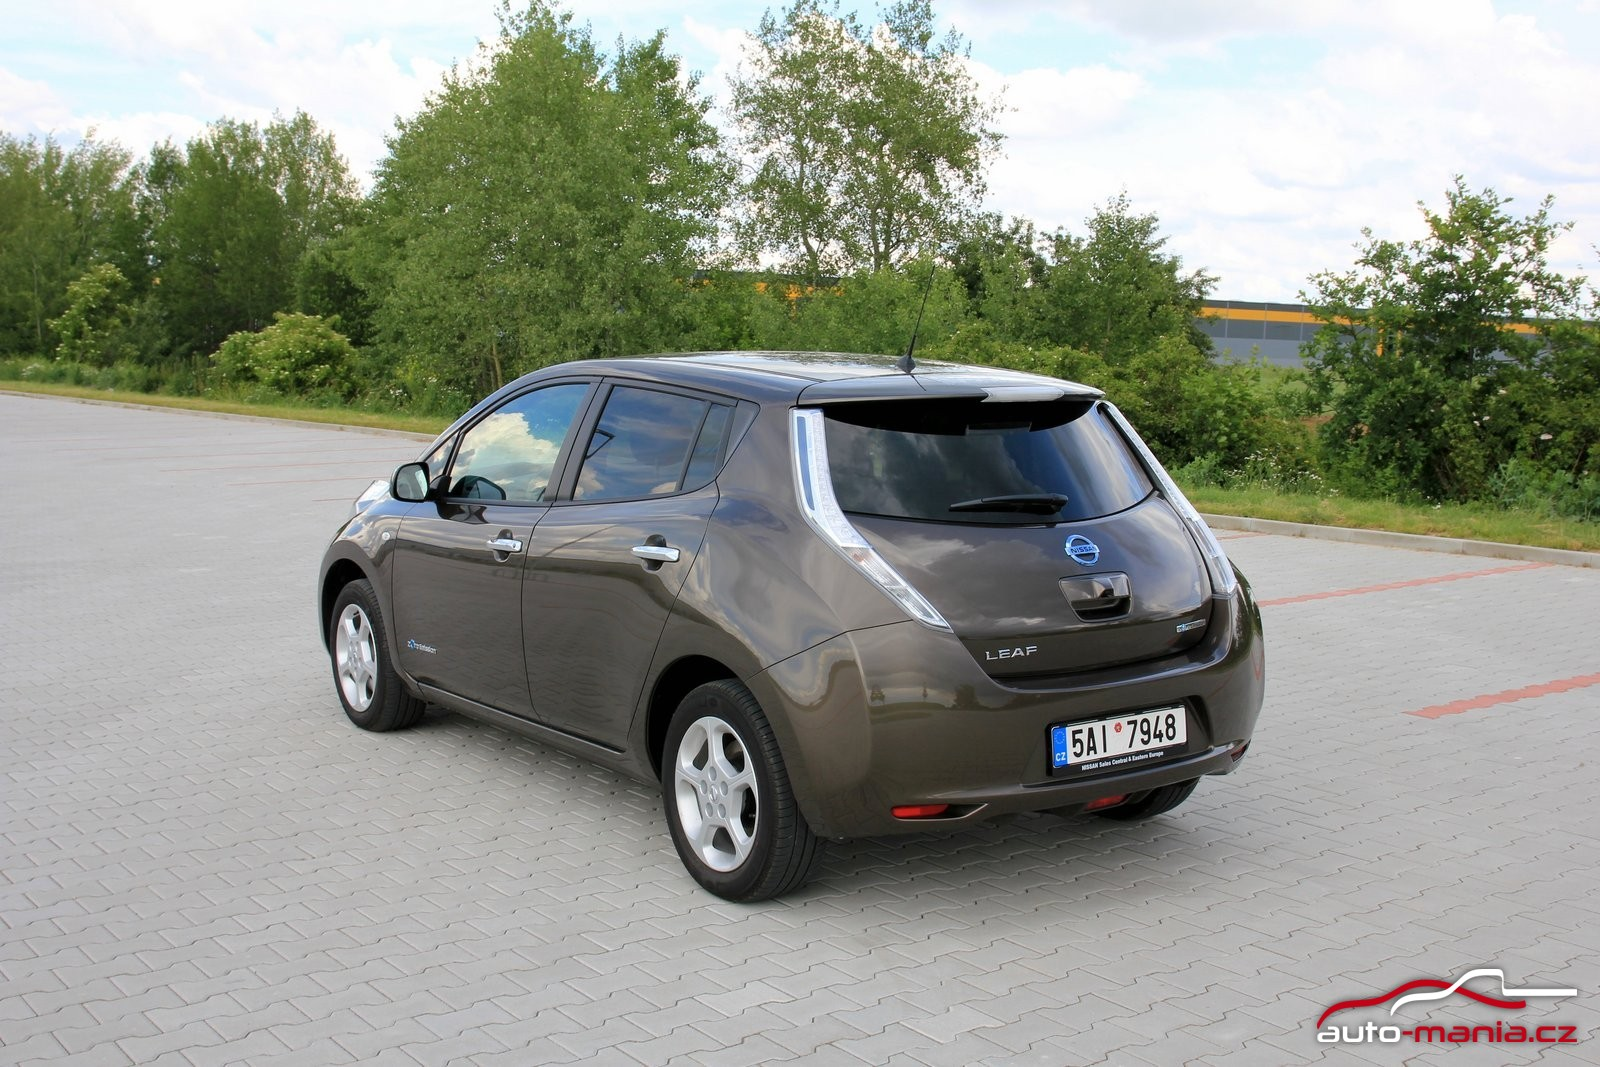 test elektromobilu nissan leaf 30 kwh. Black Bedroom Furniture Sets. Home Design Ideas